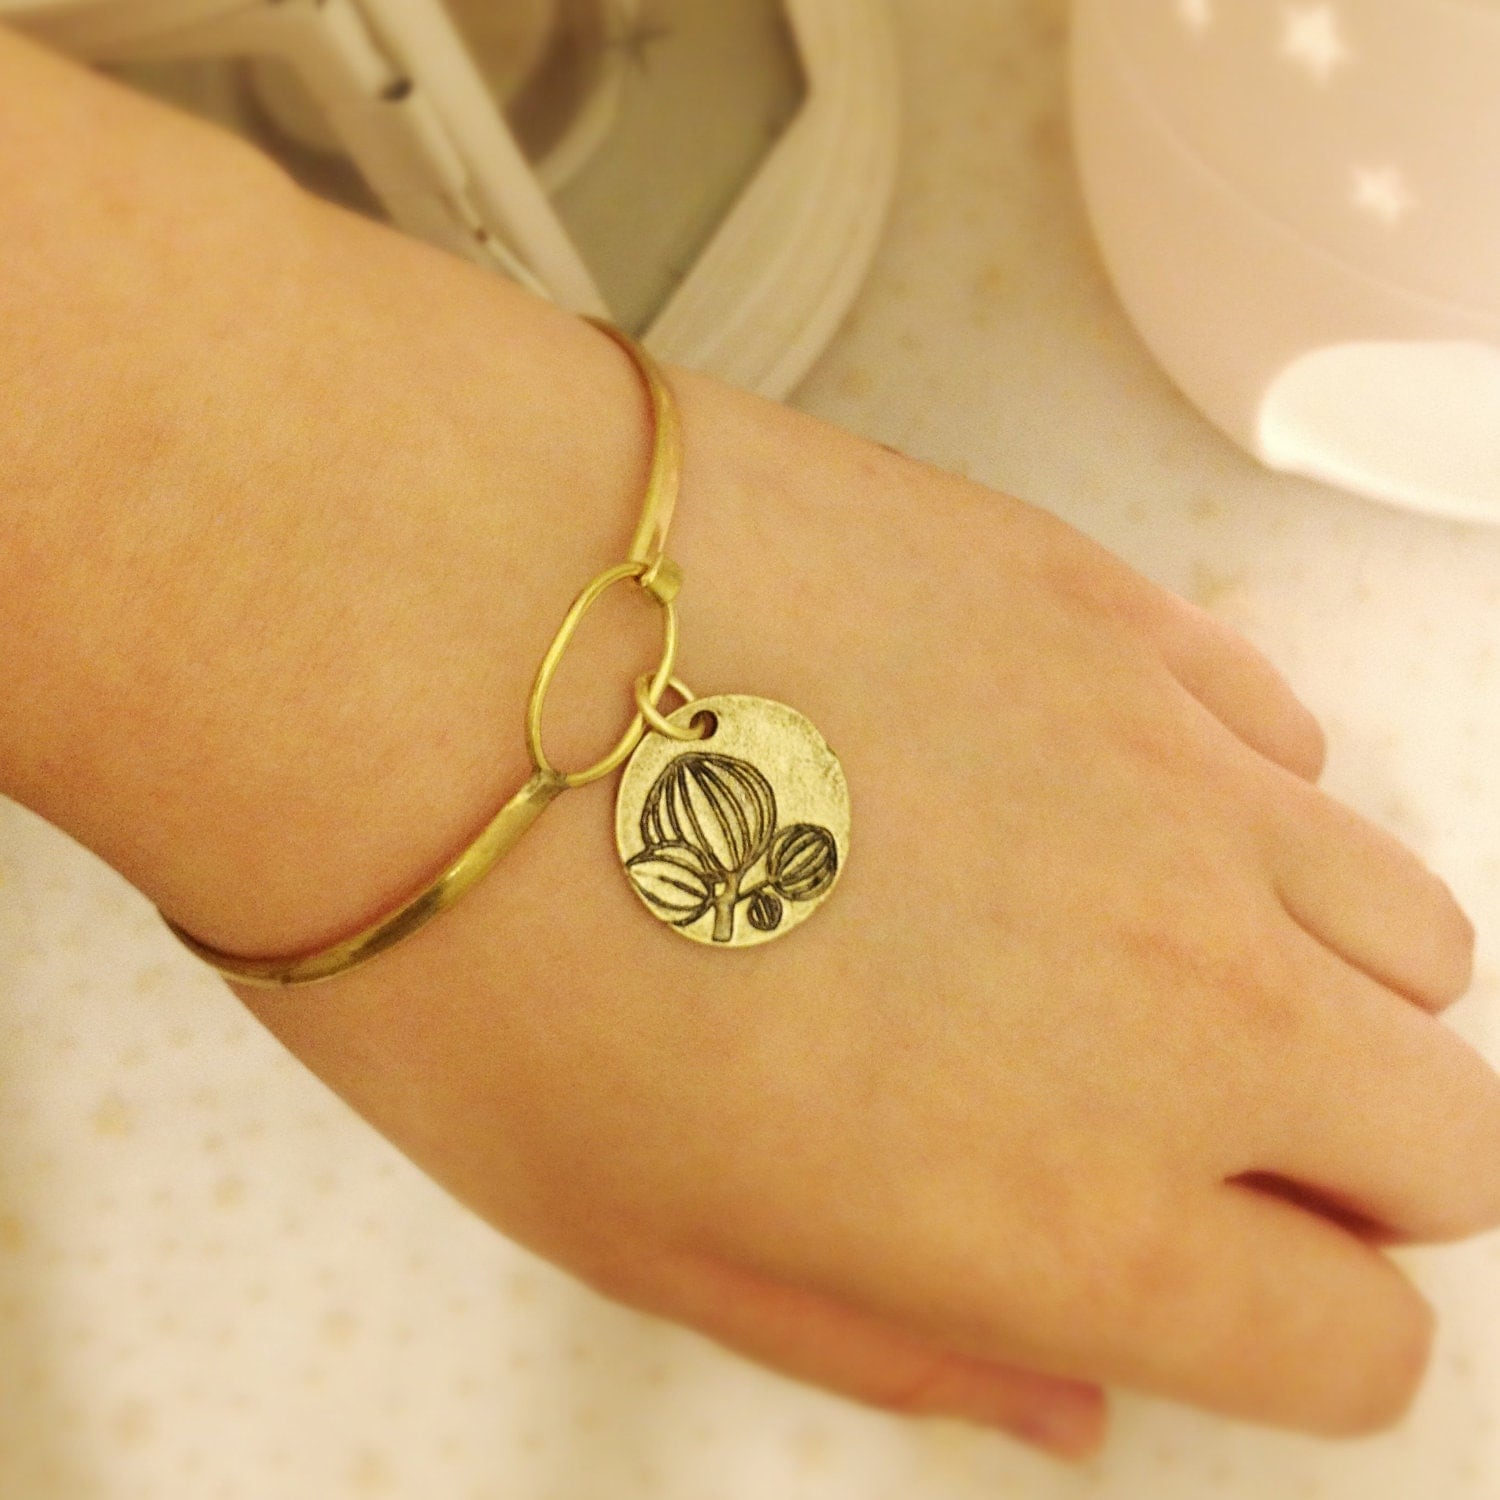 Antique Lotus Bracelet, Vintage Lotus Bangle Bracelet, Gold Lotus Bracelet, Oriental Bracelet